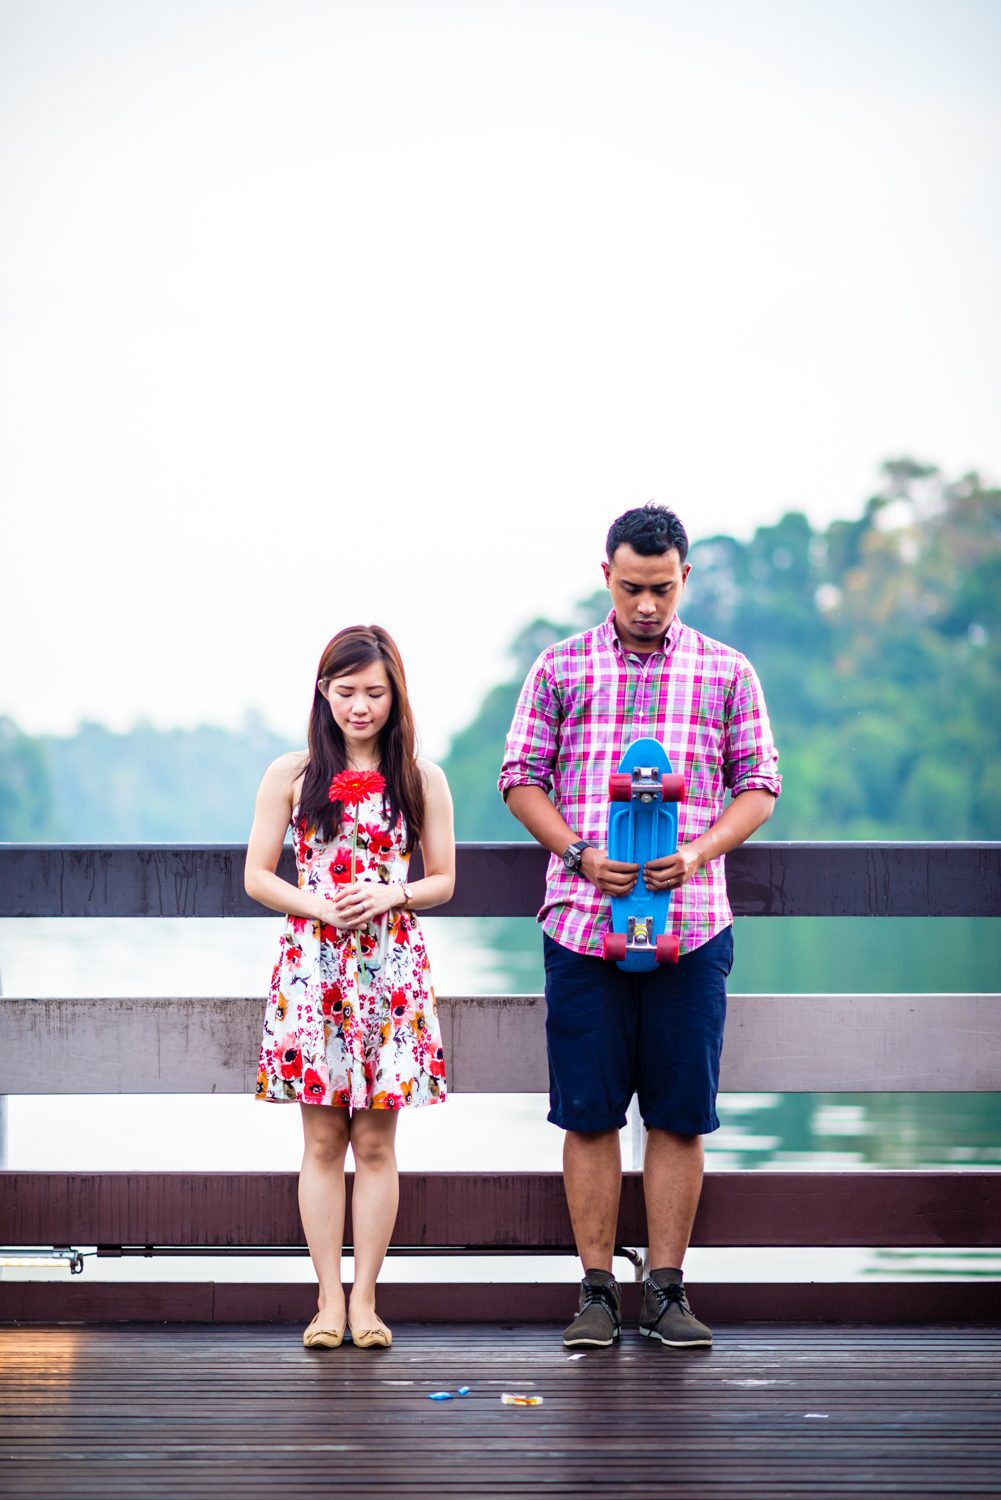 prewedding-photoshoot-macritchie-singapore-3.jpg